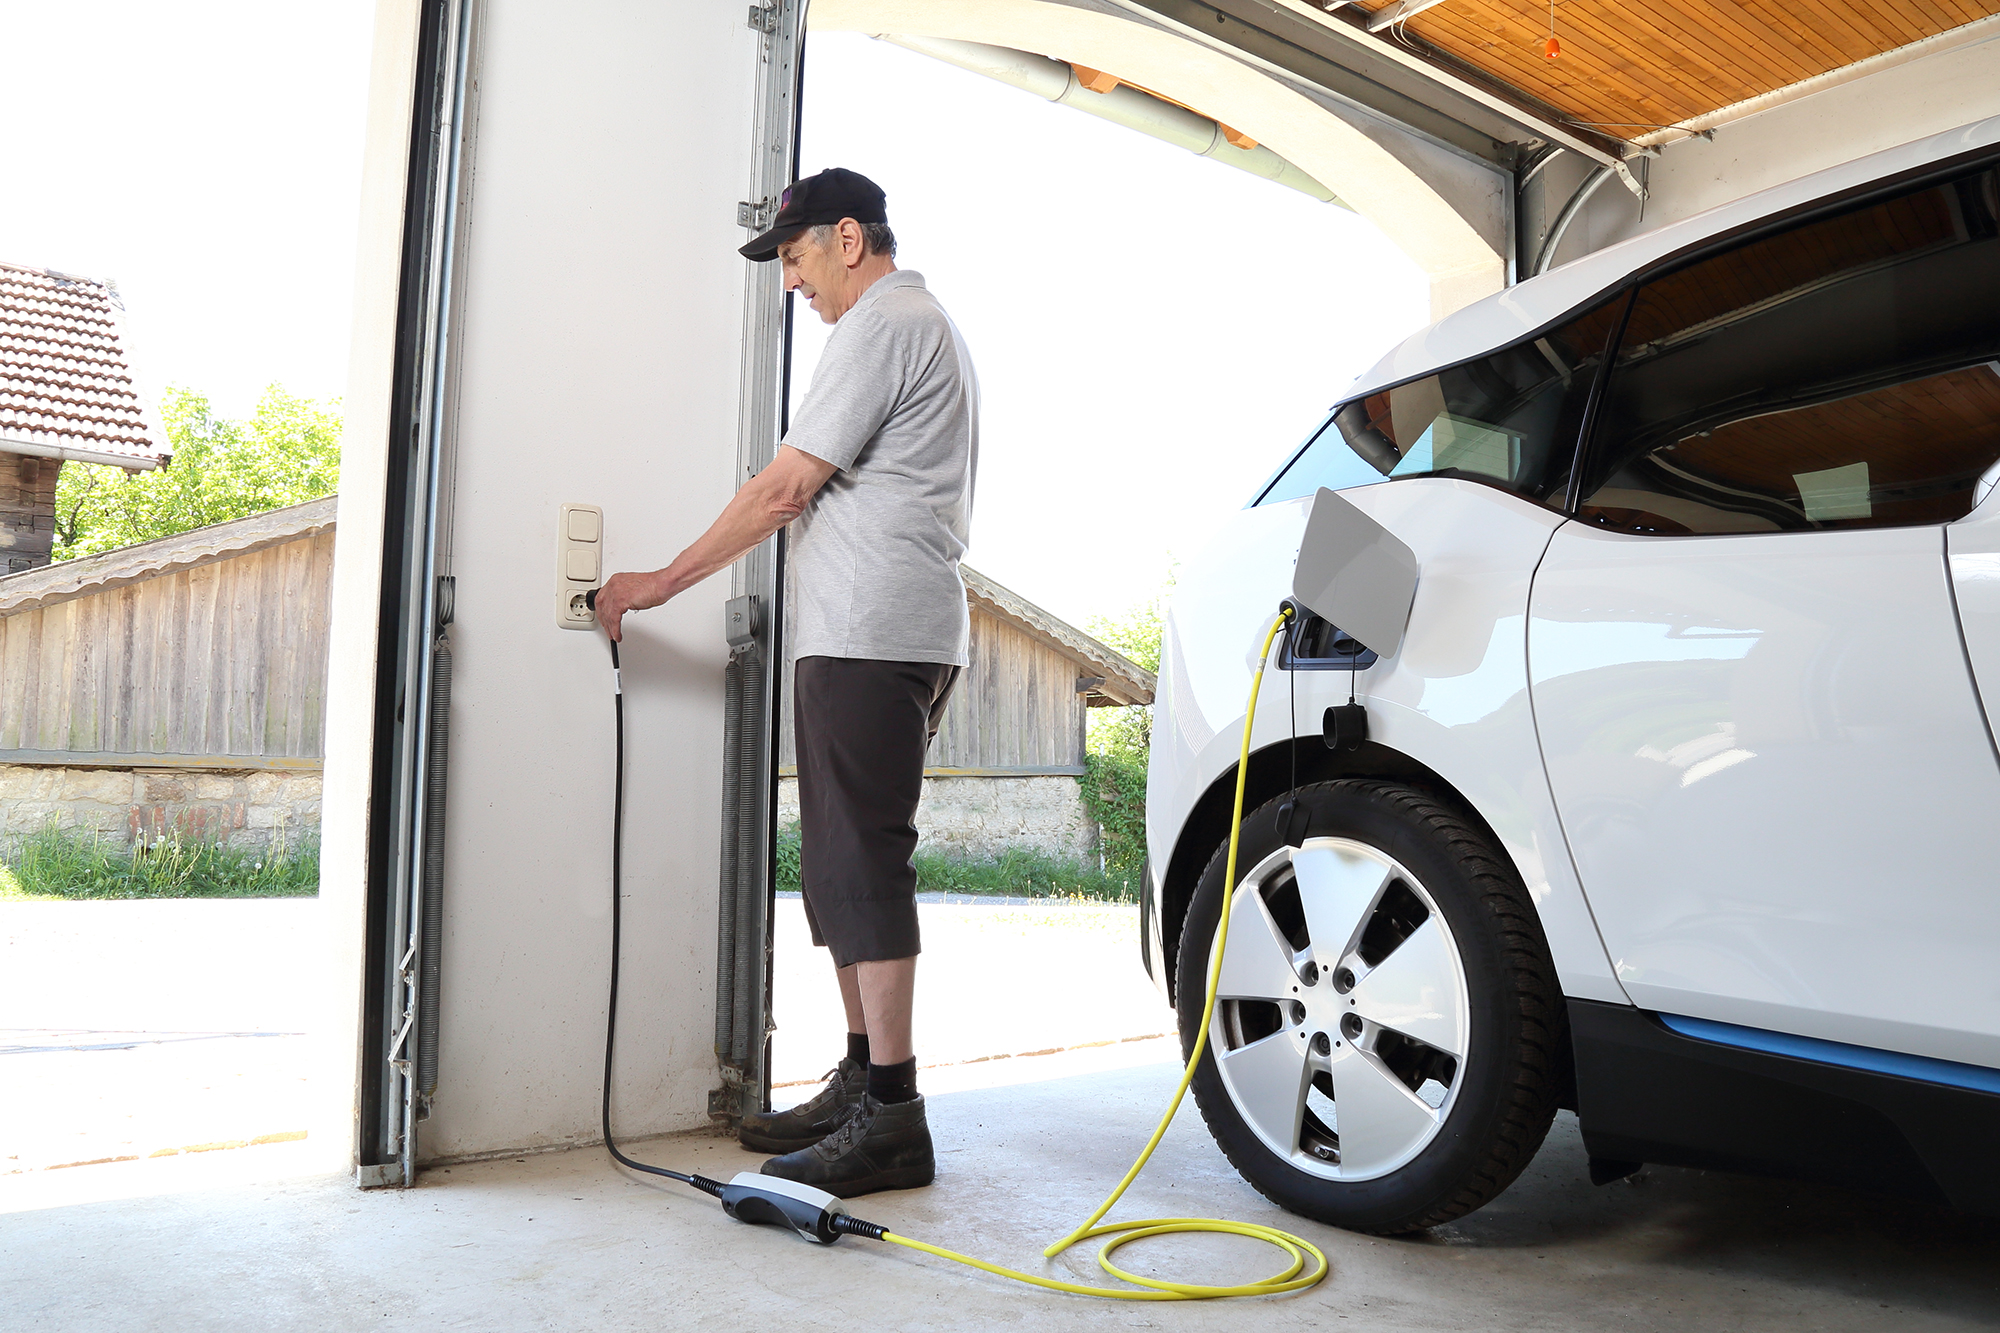 Man charging electric car at home. (Image: Shutterstock)